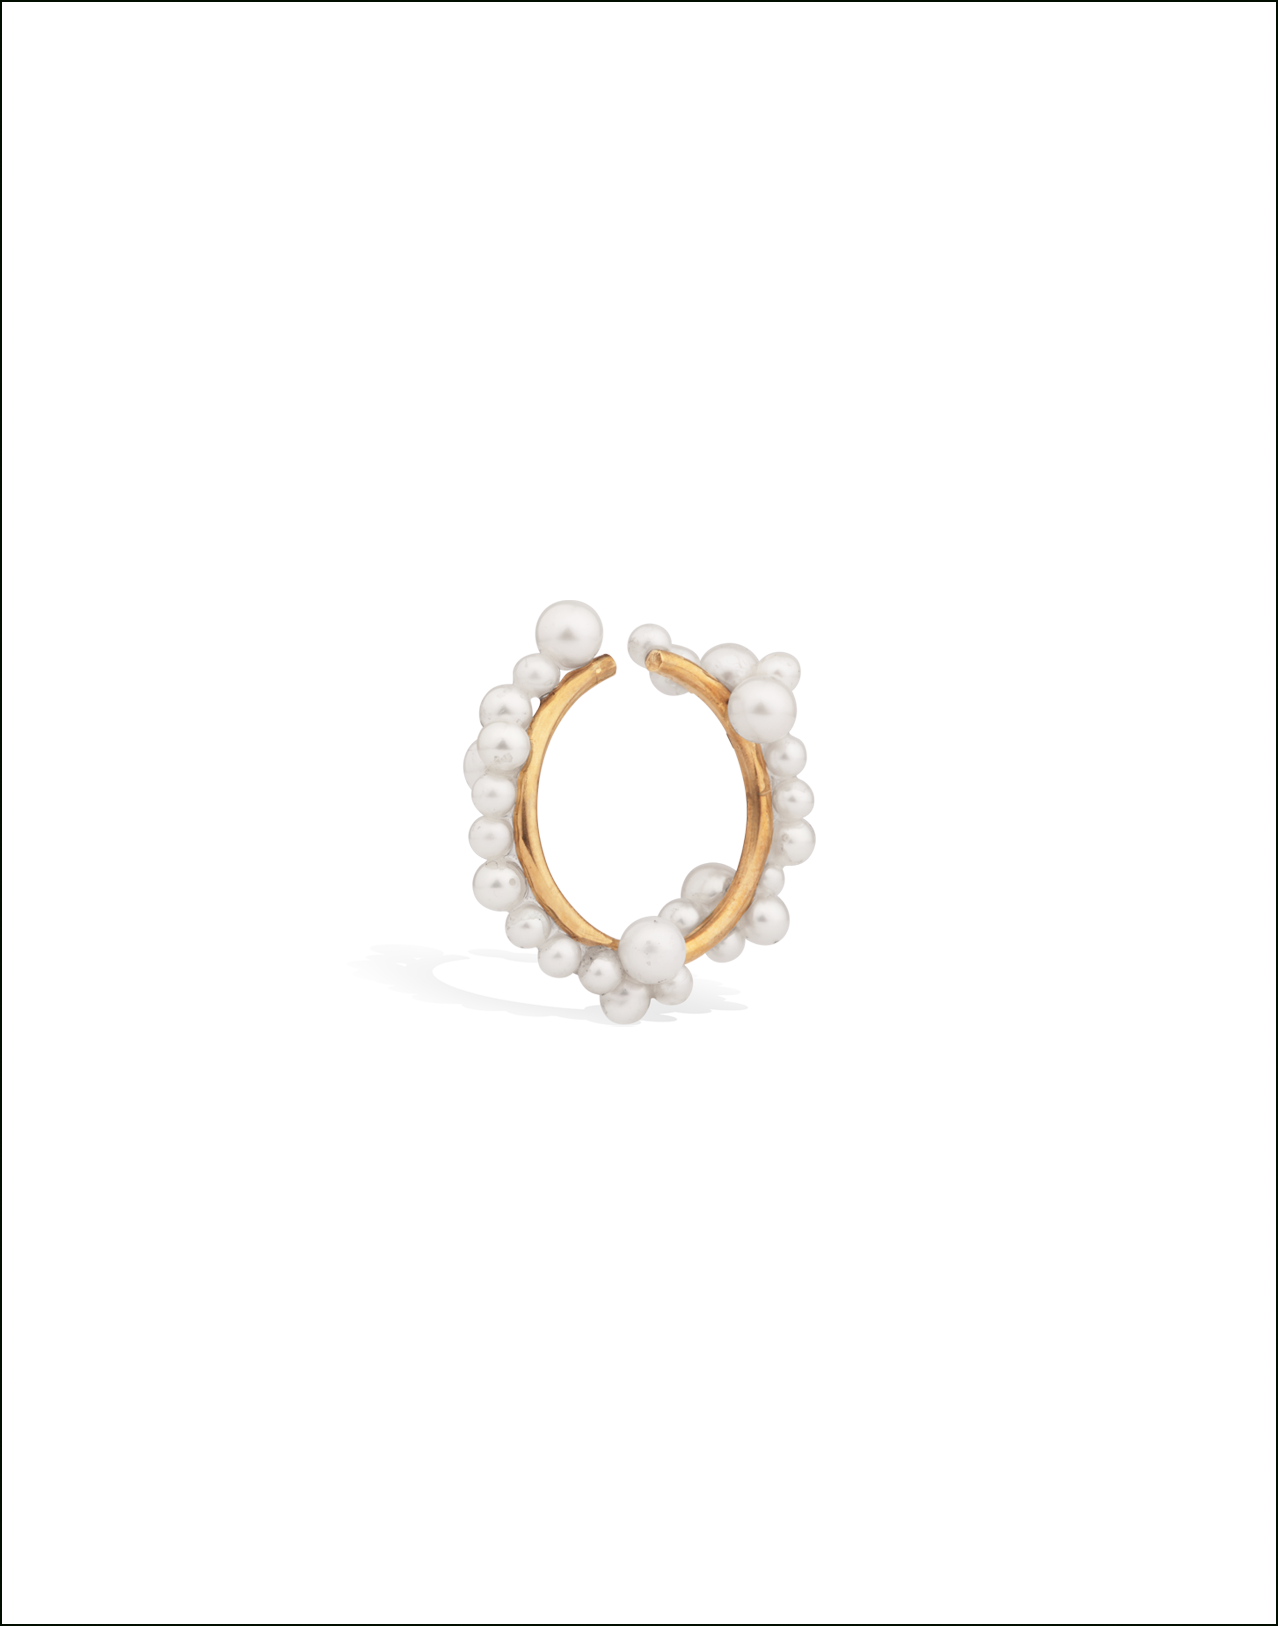 Completedworks-Ear-Cuff-Gold-Vermeil-Snow-1-1.png